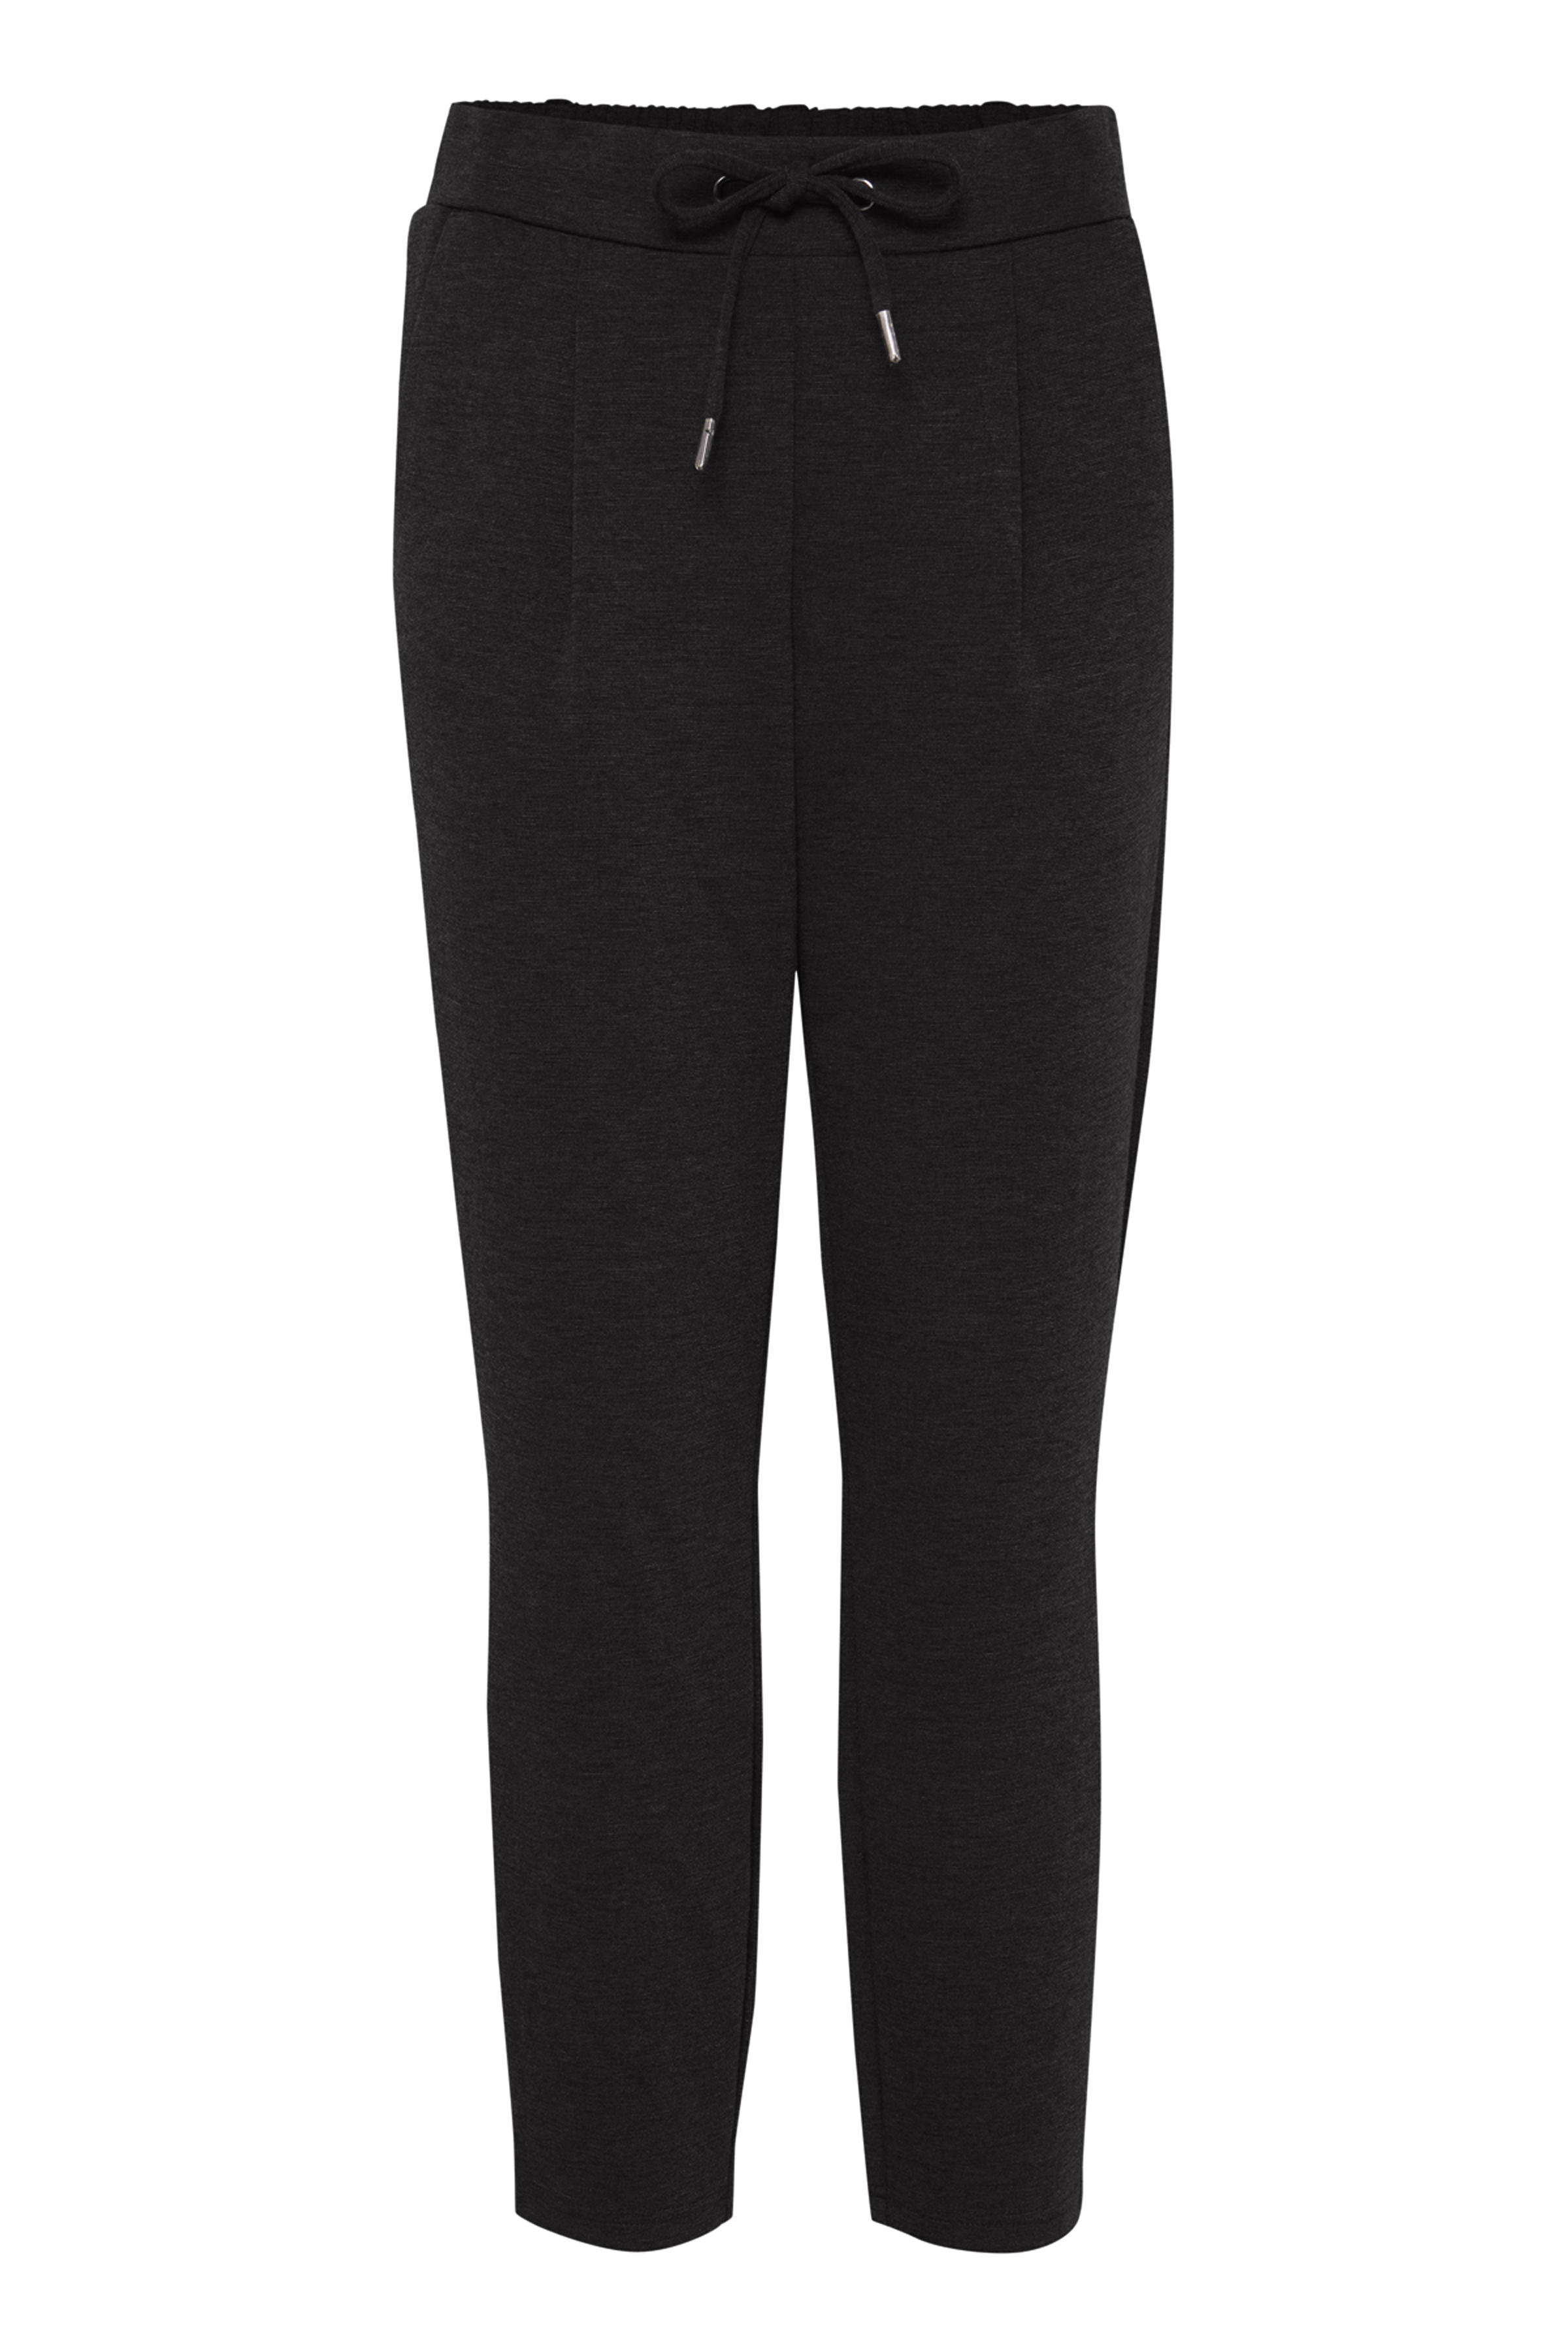 Black Pants Casual van b.young – Koop Black Pants Casual hier van size XS-XXL